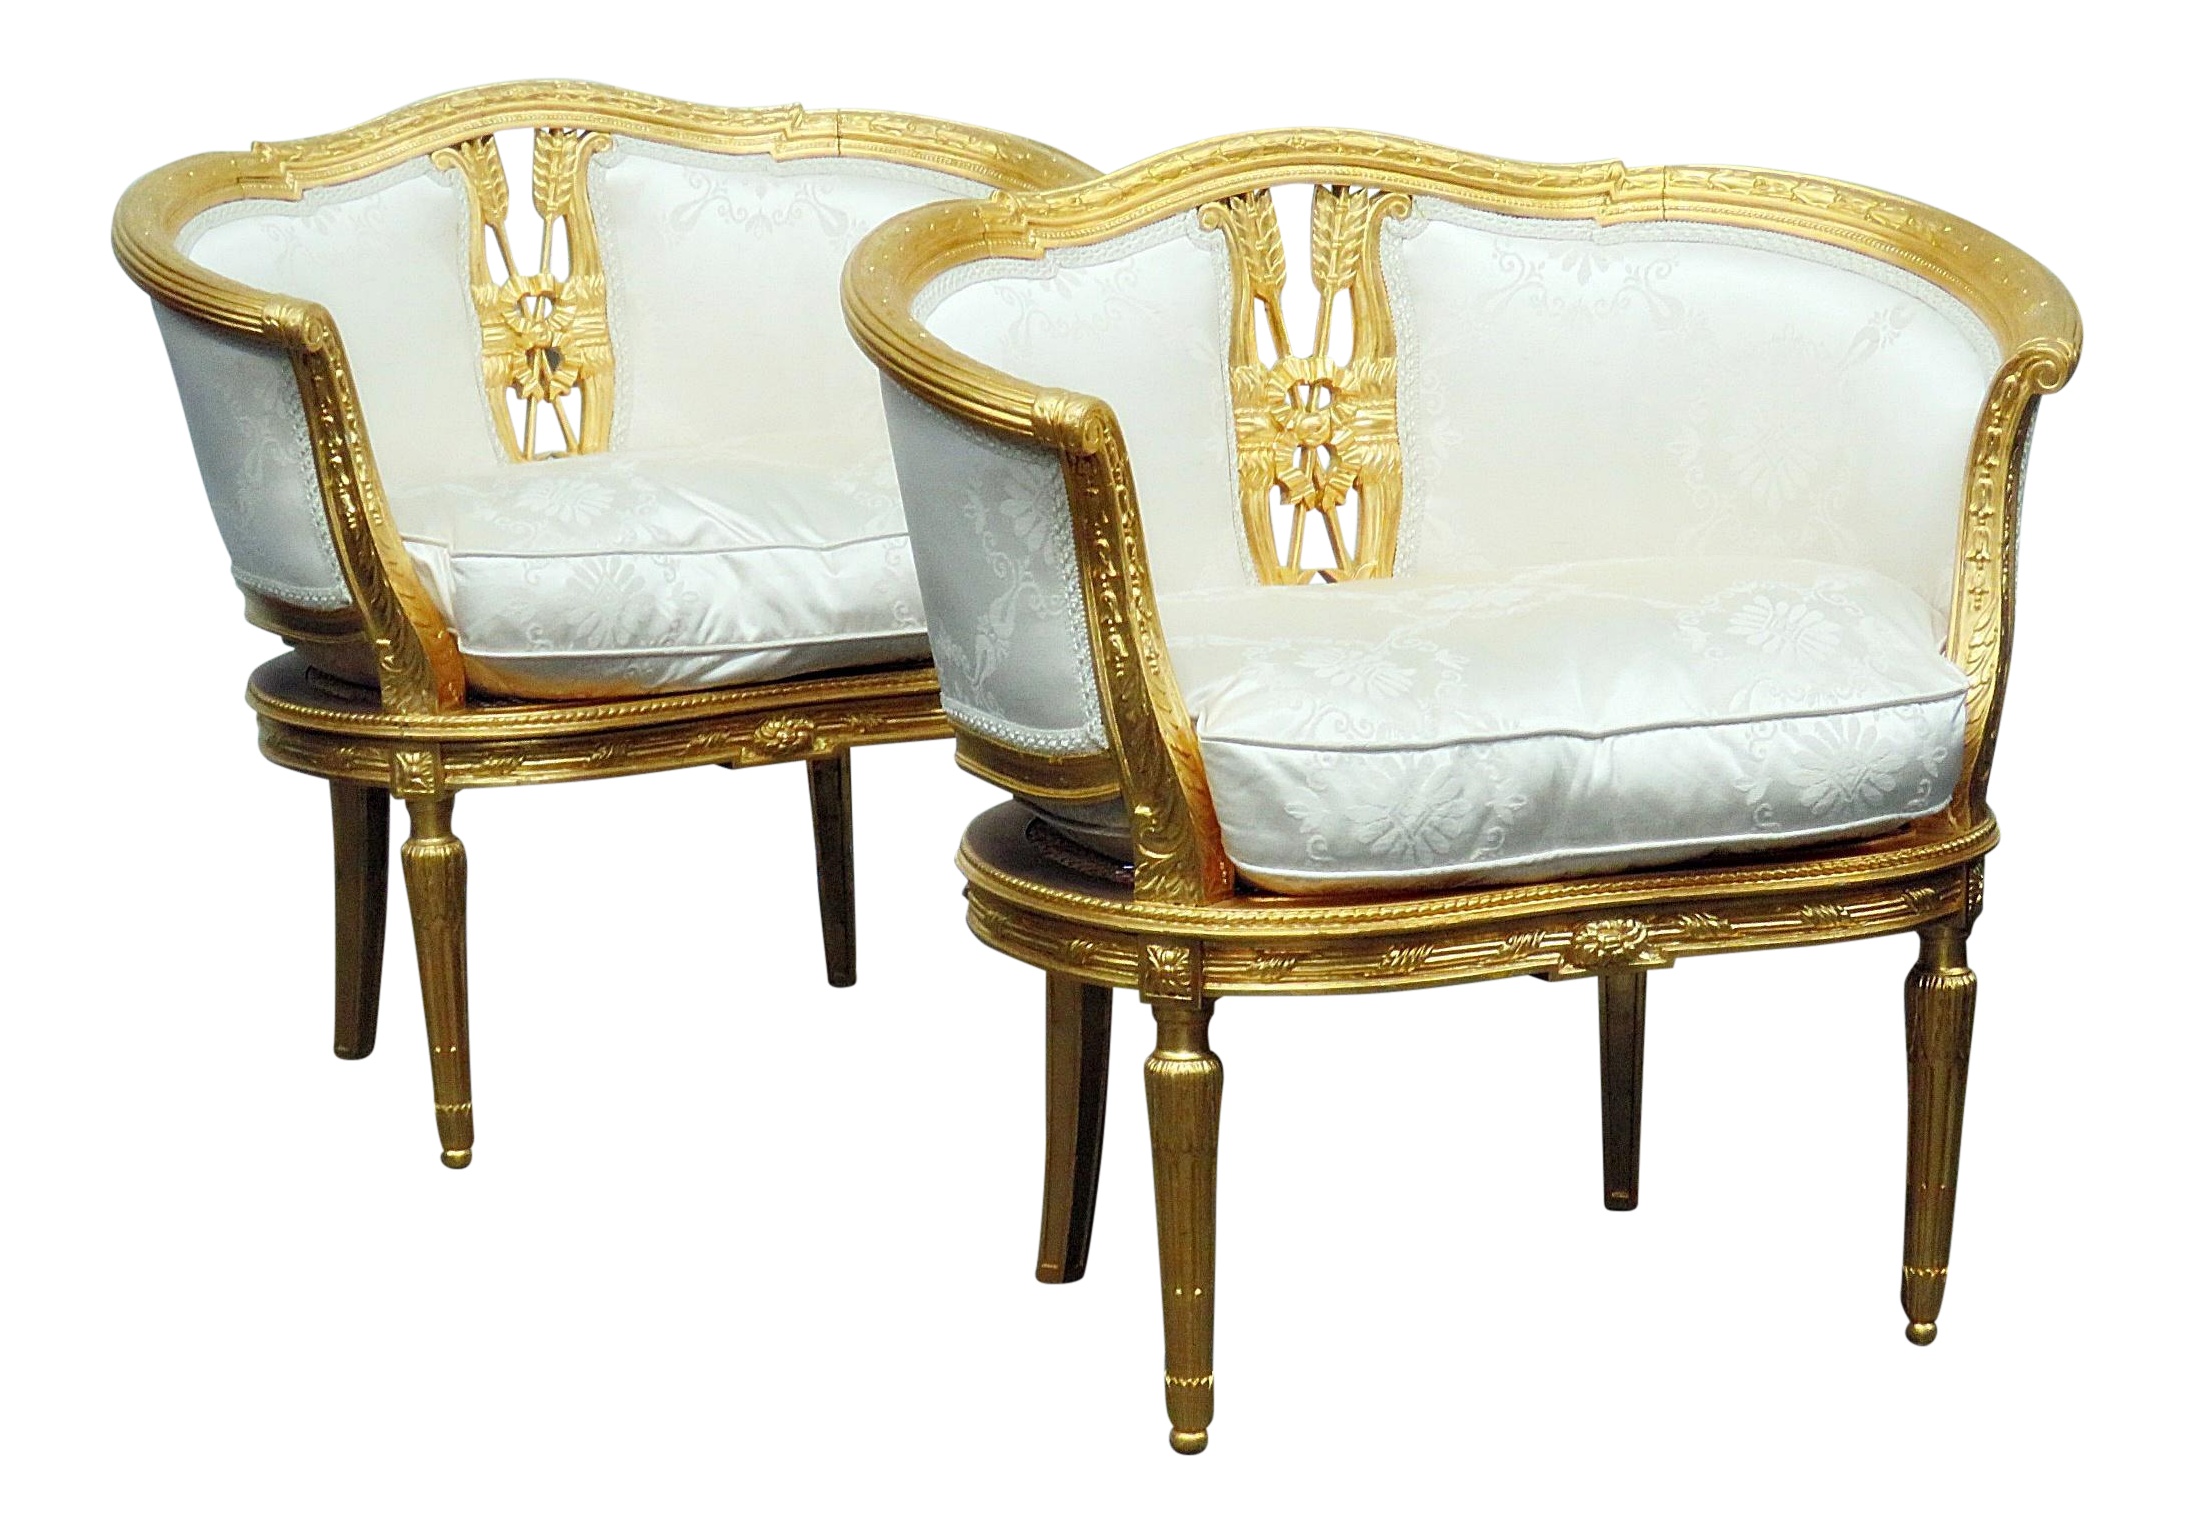 Hollywood Regency Style Gilt Marquis Chairs  A Pair For Sale Regency Style Furniture E82